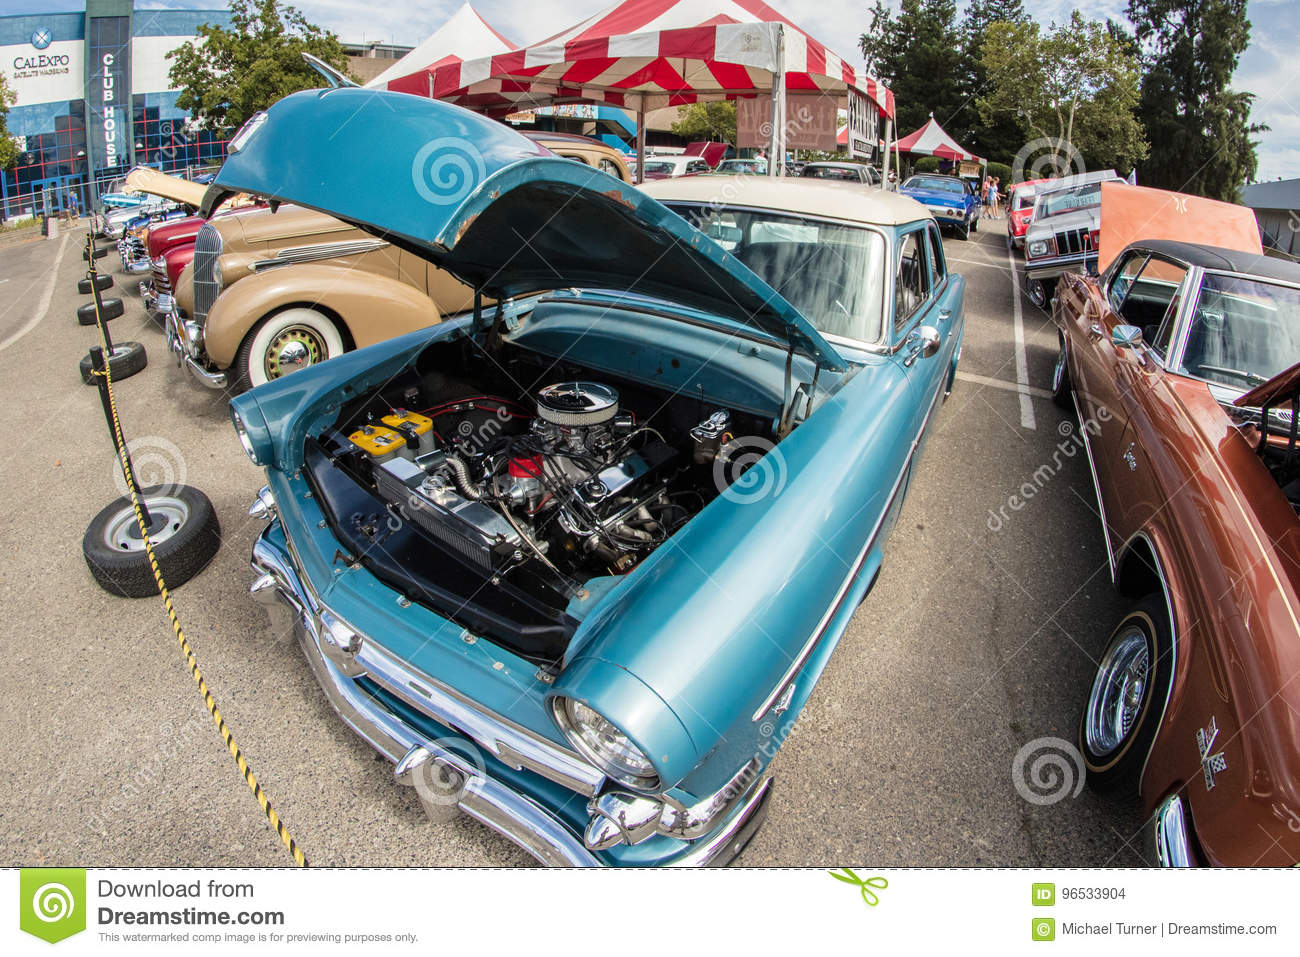 Cal Expo Auto Show Vintage Autos Editorial Stock Image - Image of ...